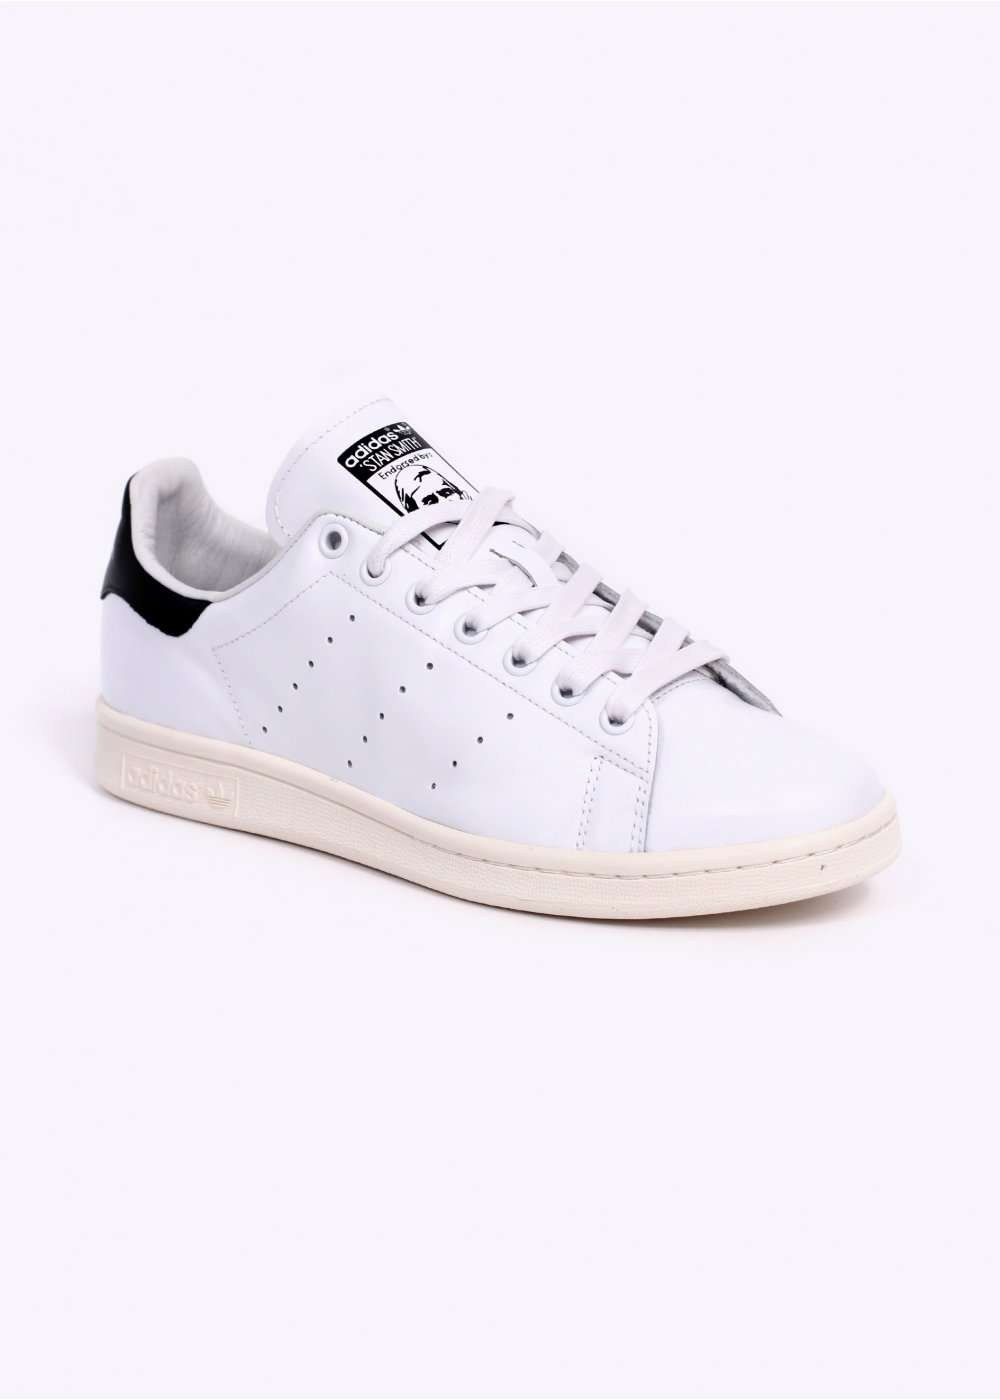 85076c1df1f Buy black stan smith trainers   OFF65% Discounted